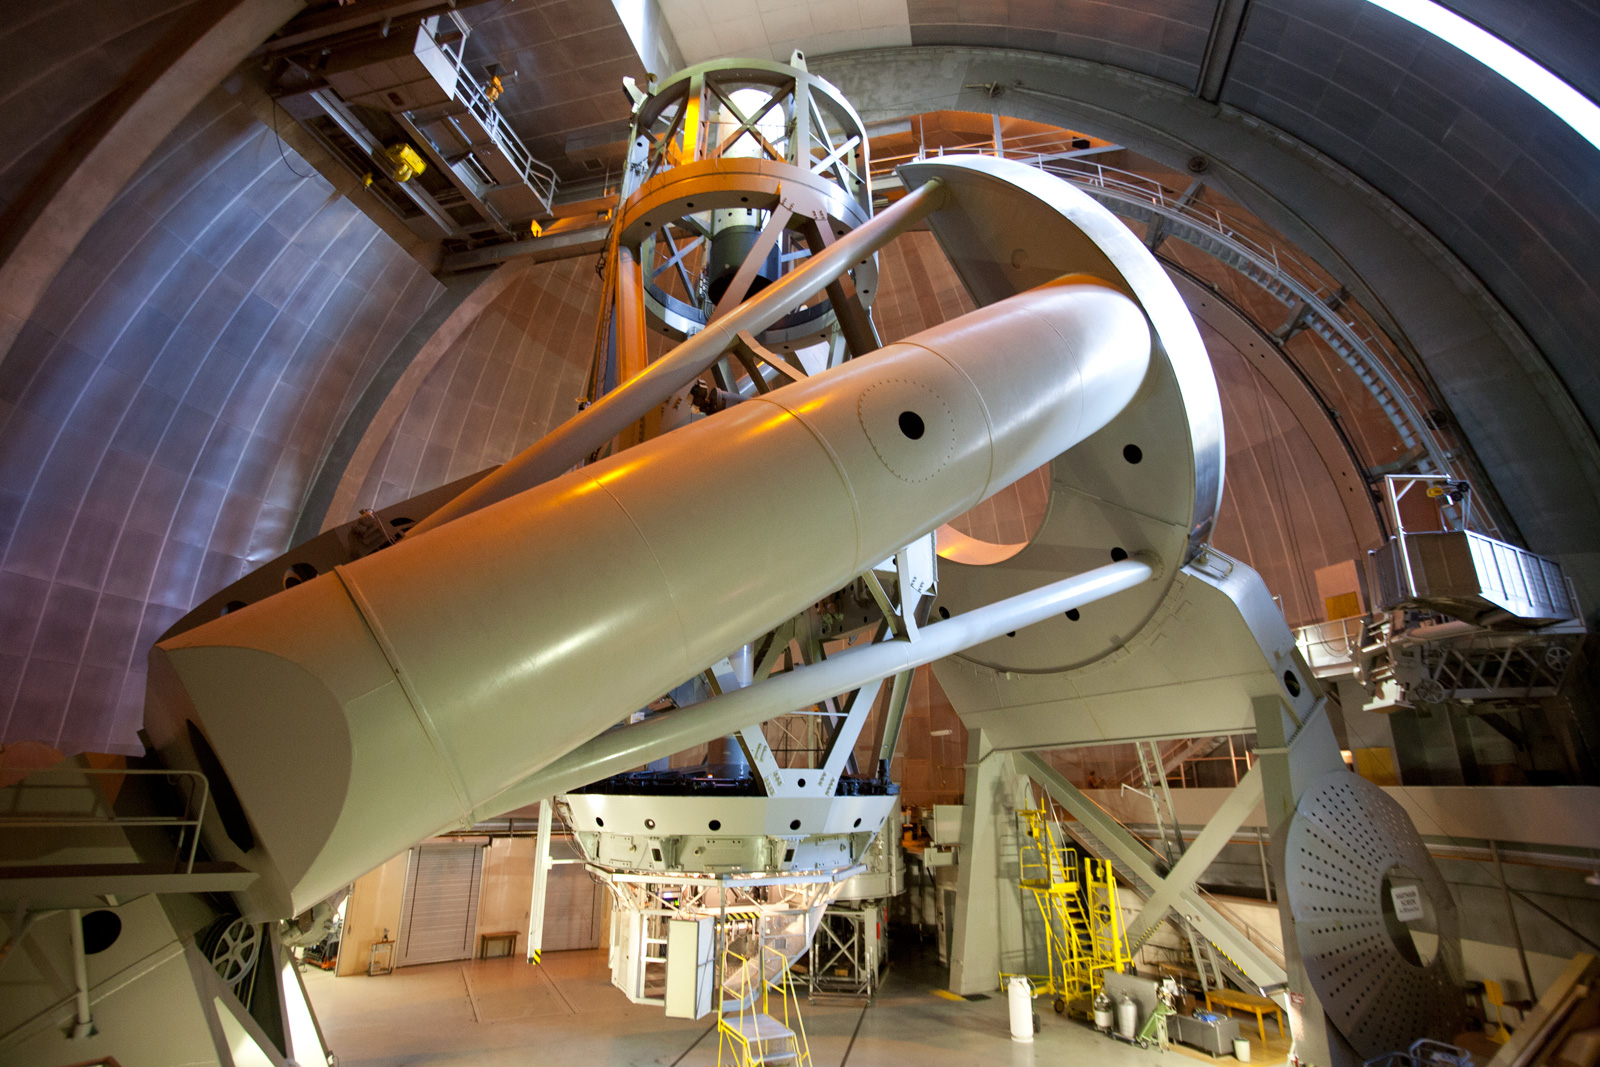 The inch hale telescope